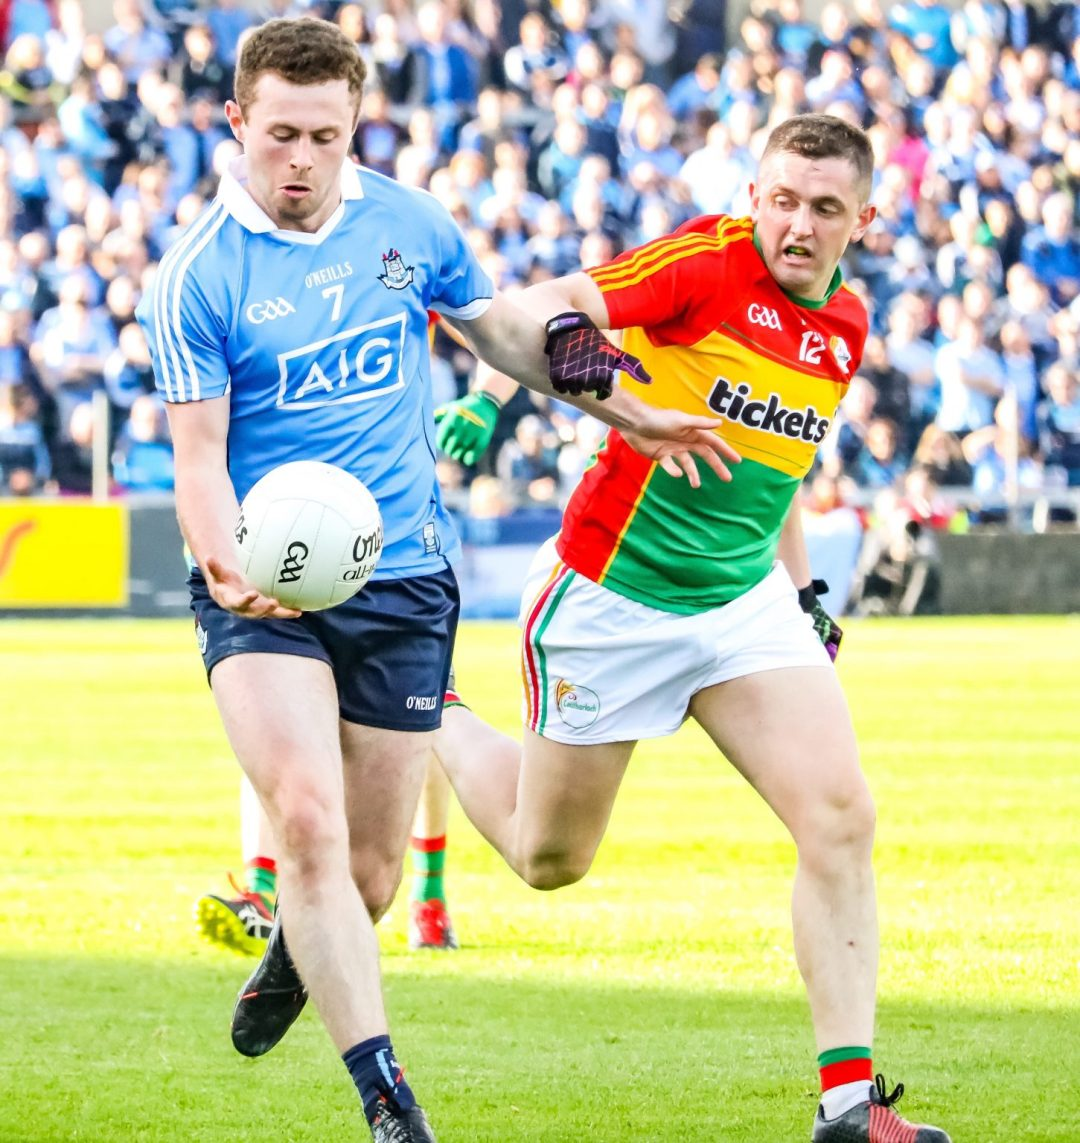 Dublin Player Jack McCaffrey In Sky Blue Jersey Breaking Away From a Carlow Player In a red yellow and green jersey during last year's Leinster Senior Football Championship